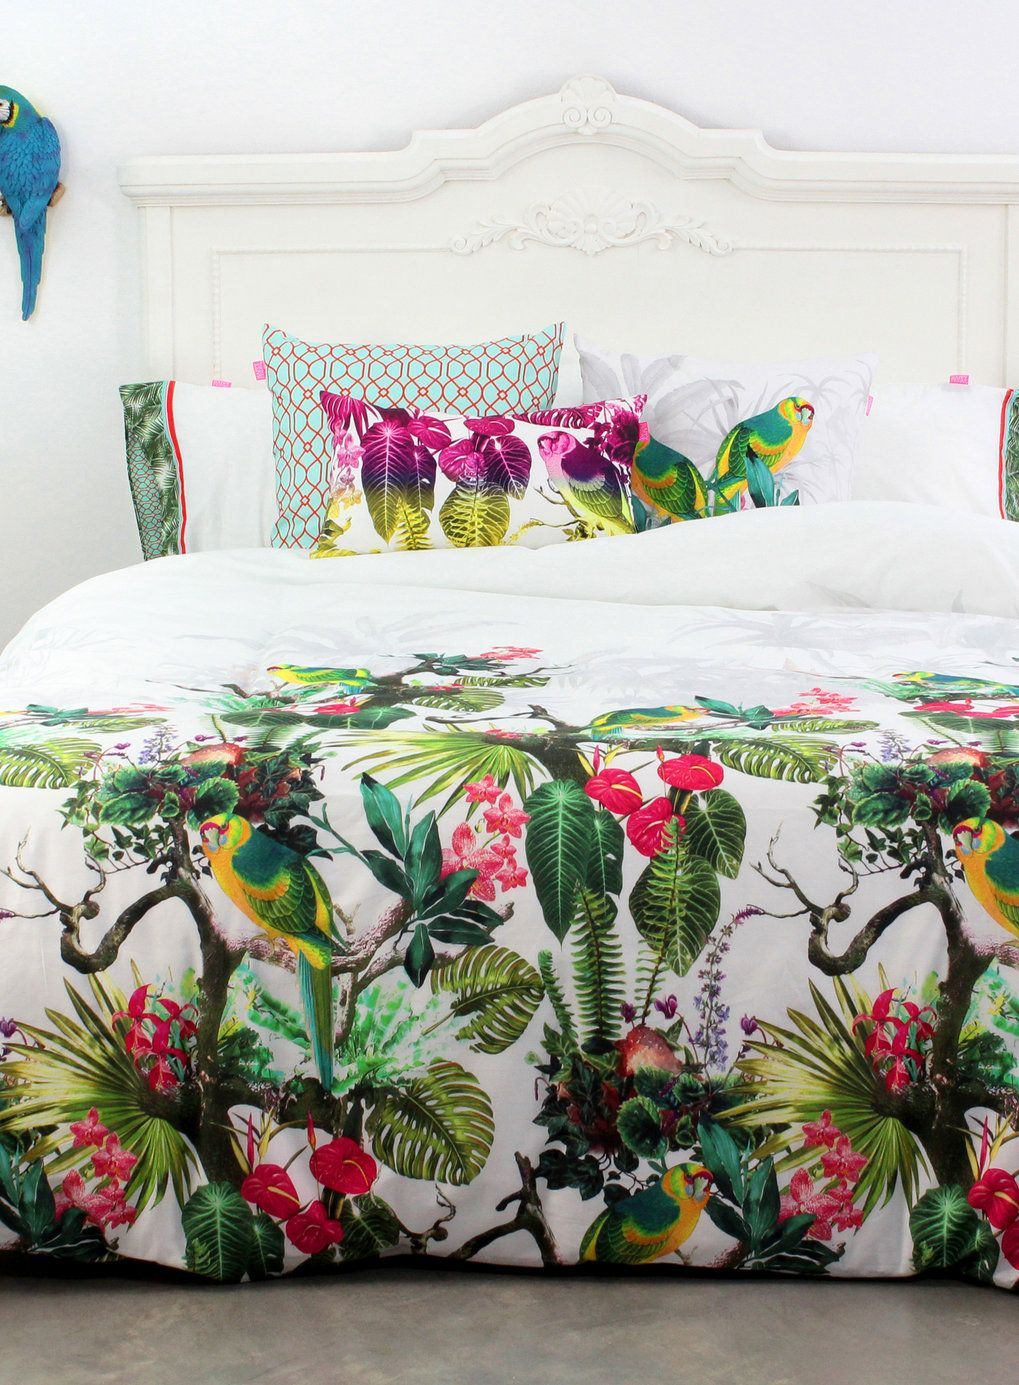 home bedding collection fashions tropical comforters s tahiti paul coltahitivm bed quilts